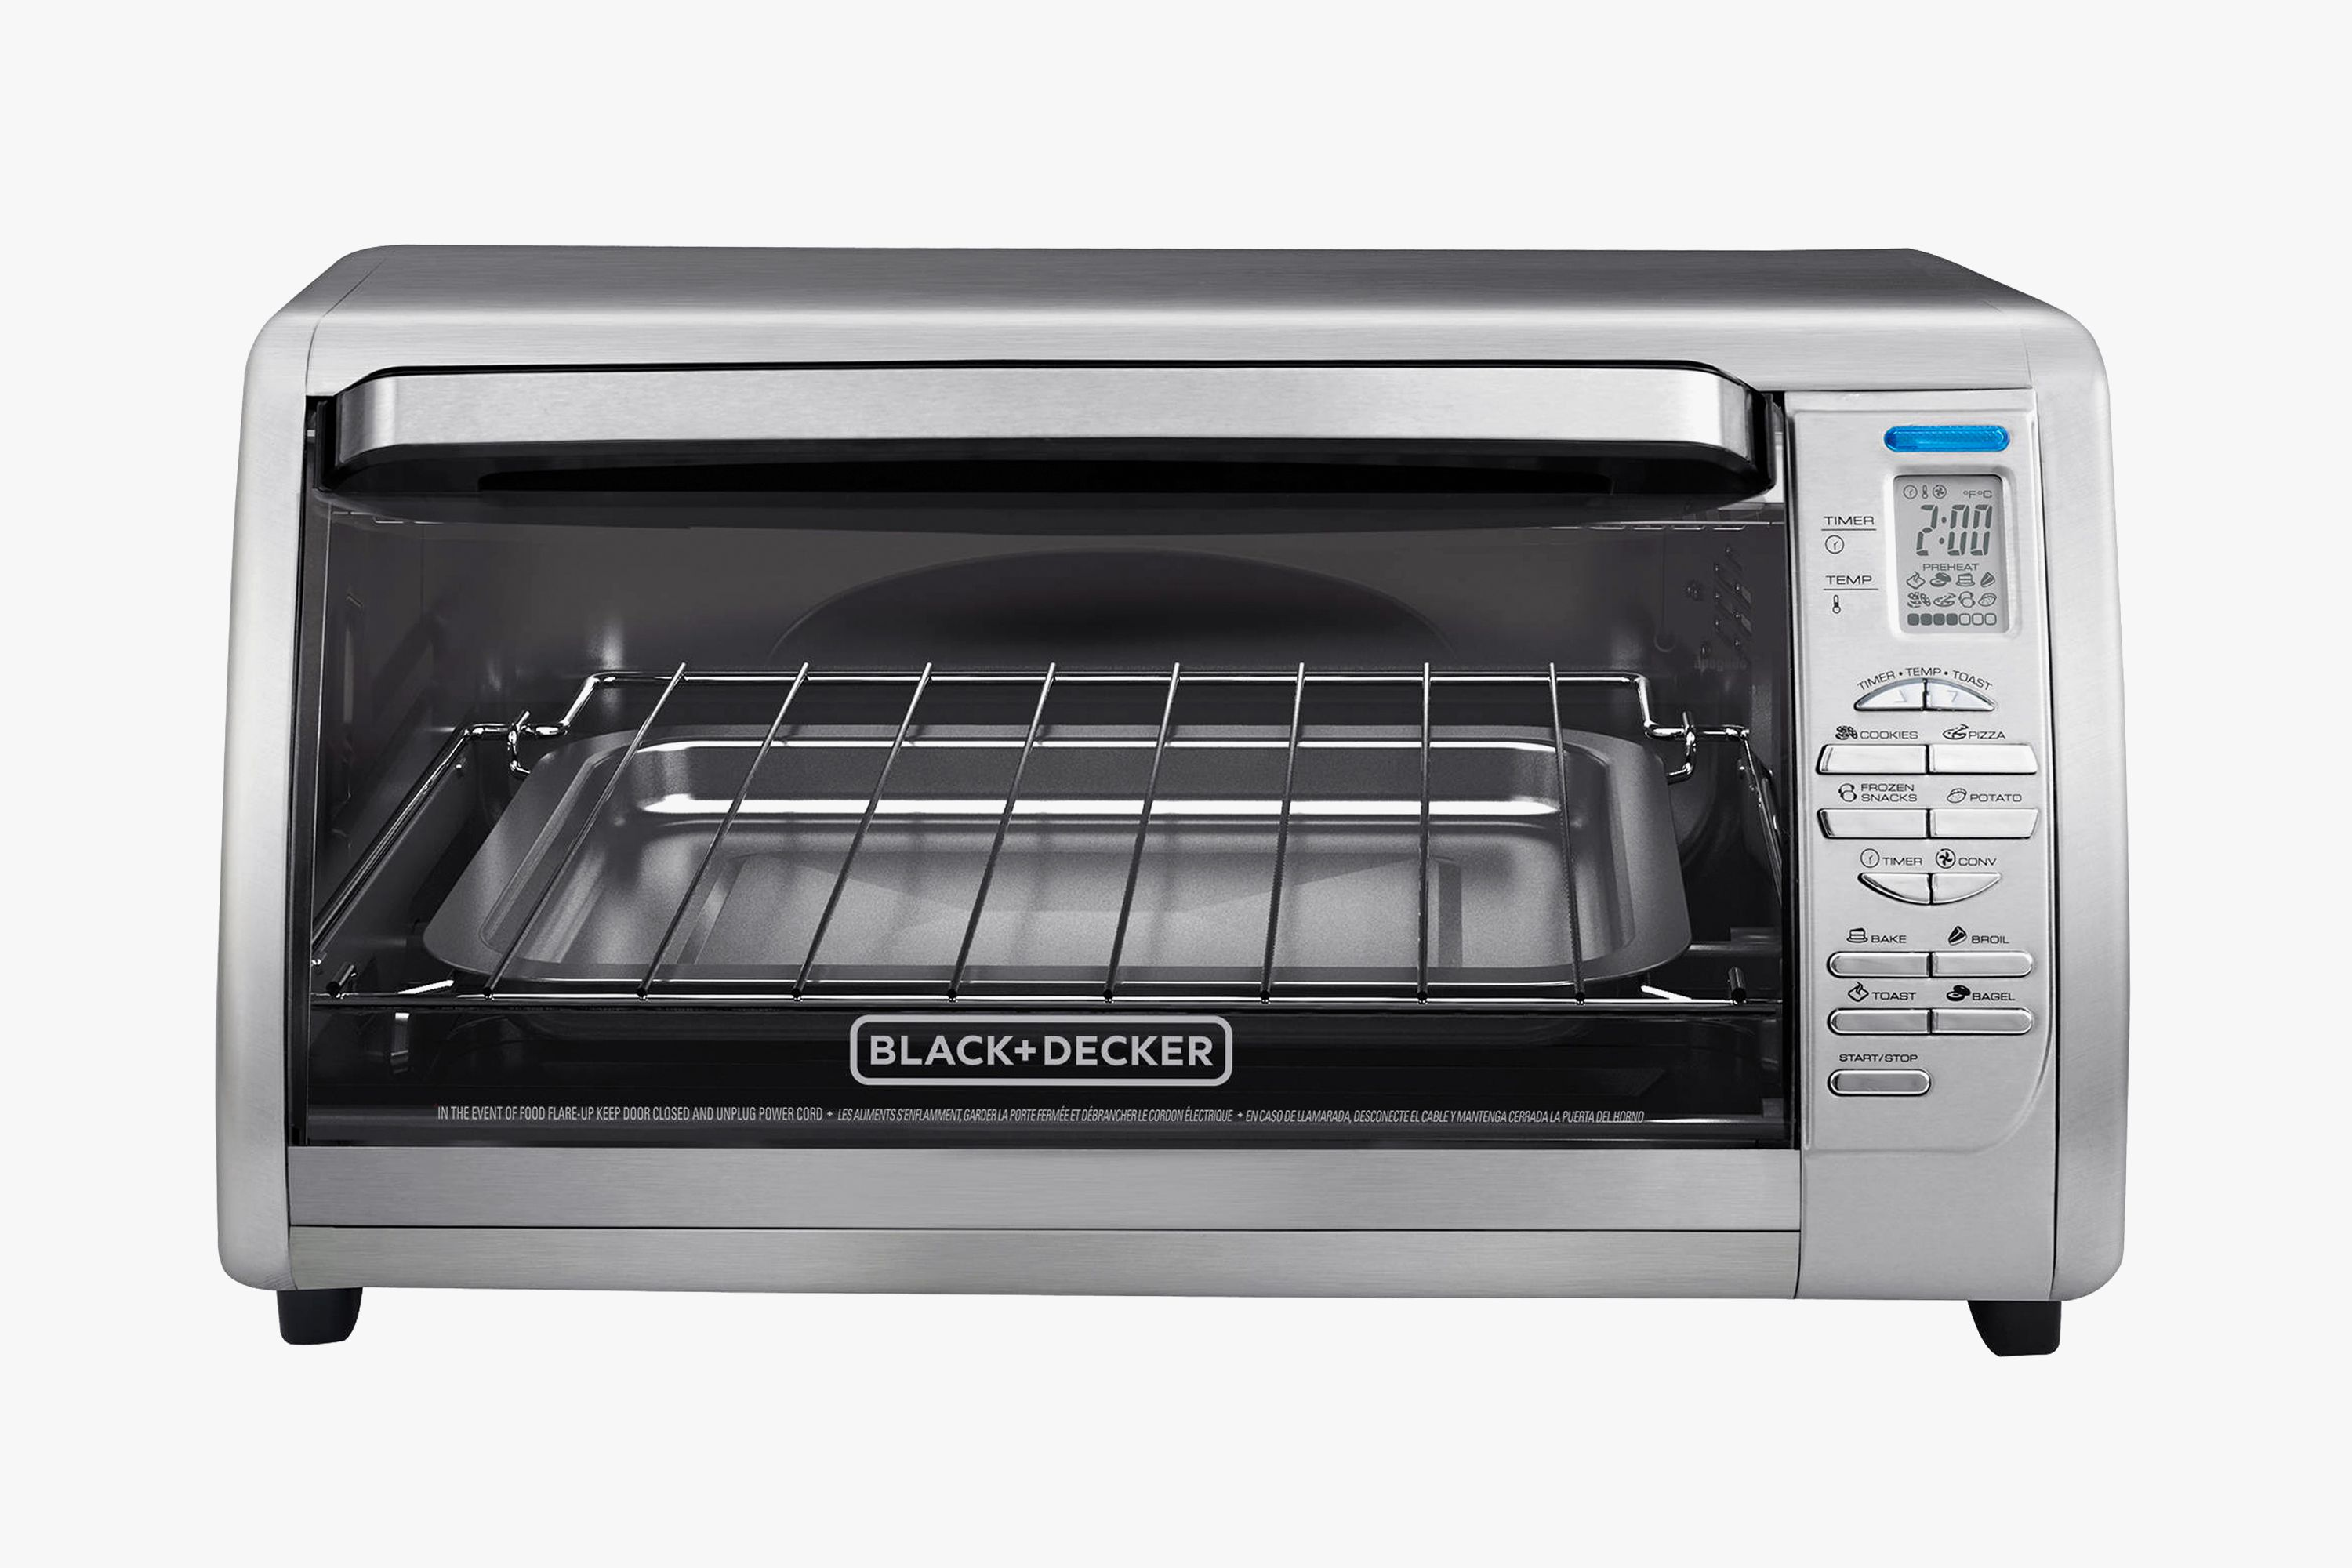 BLACK+DECKER Convection Toaster Oven